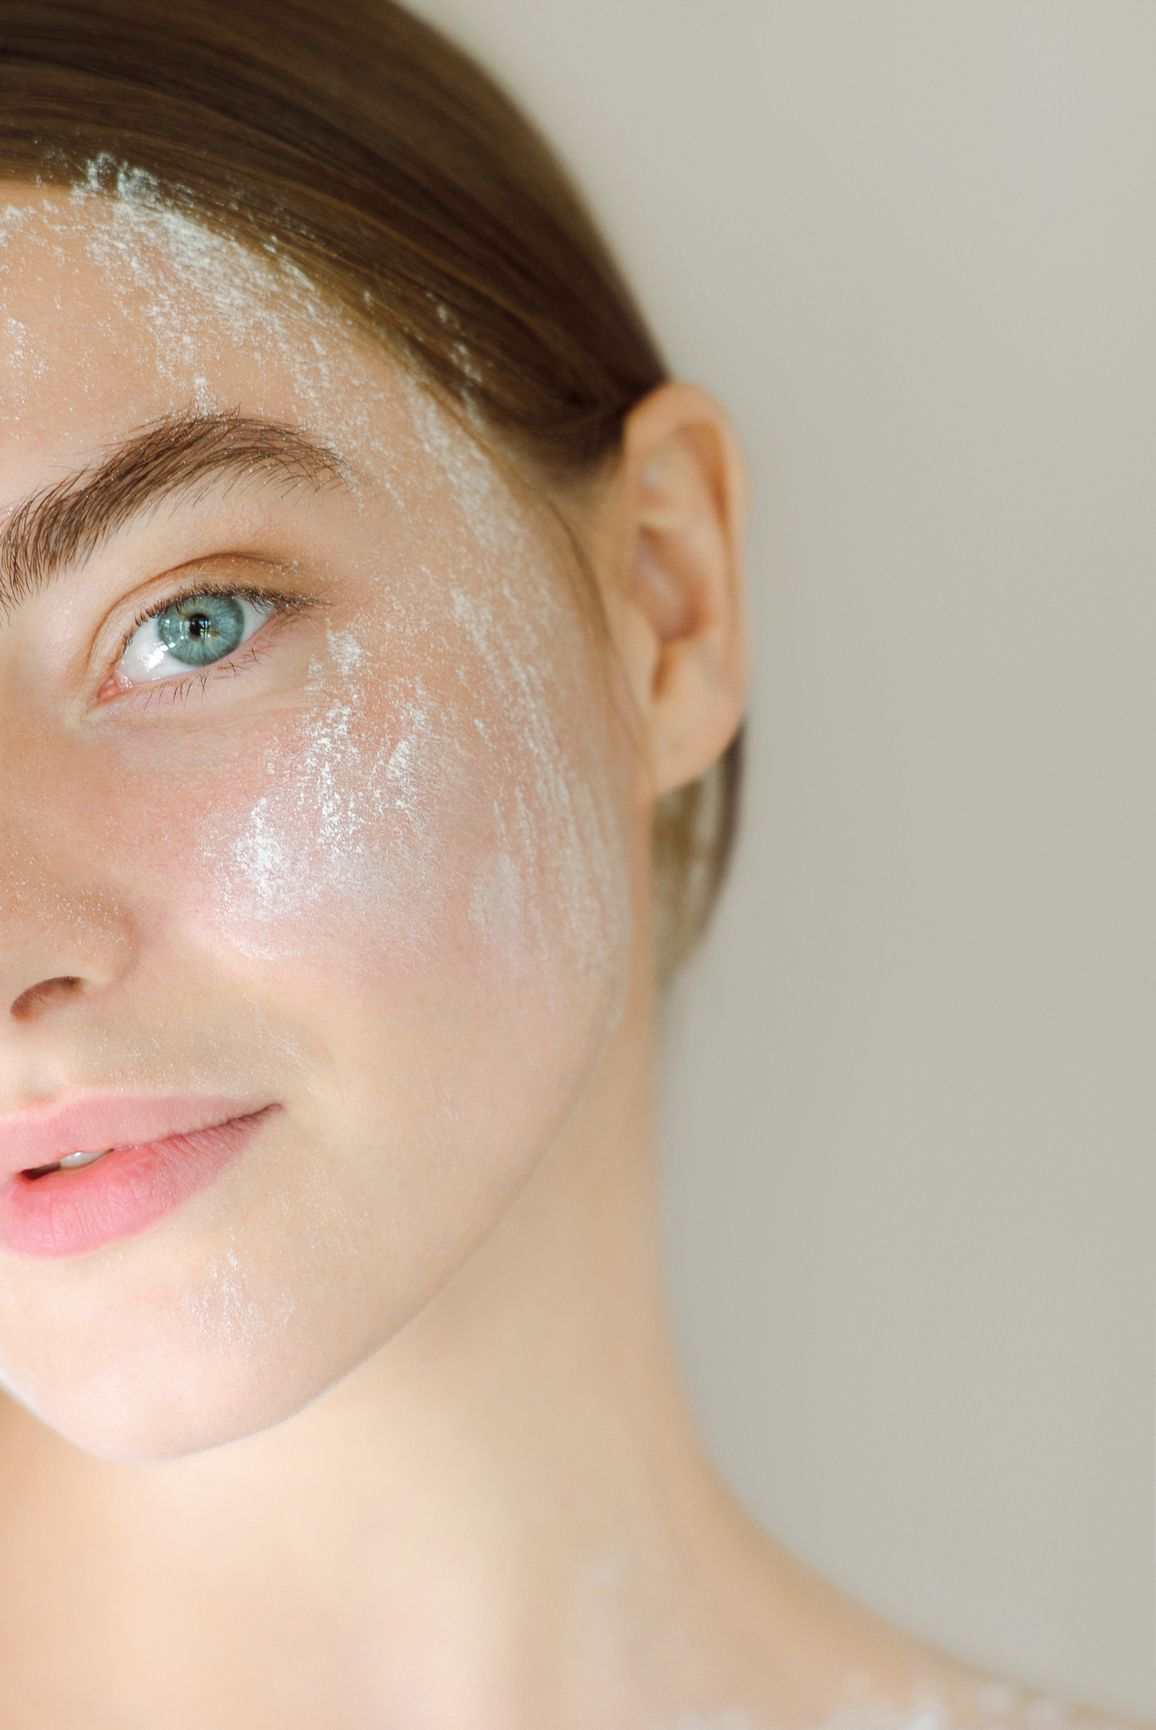 The 14 Best Face Scrubs for Instantly Glowing Skin